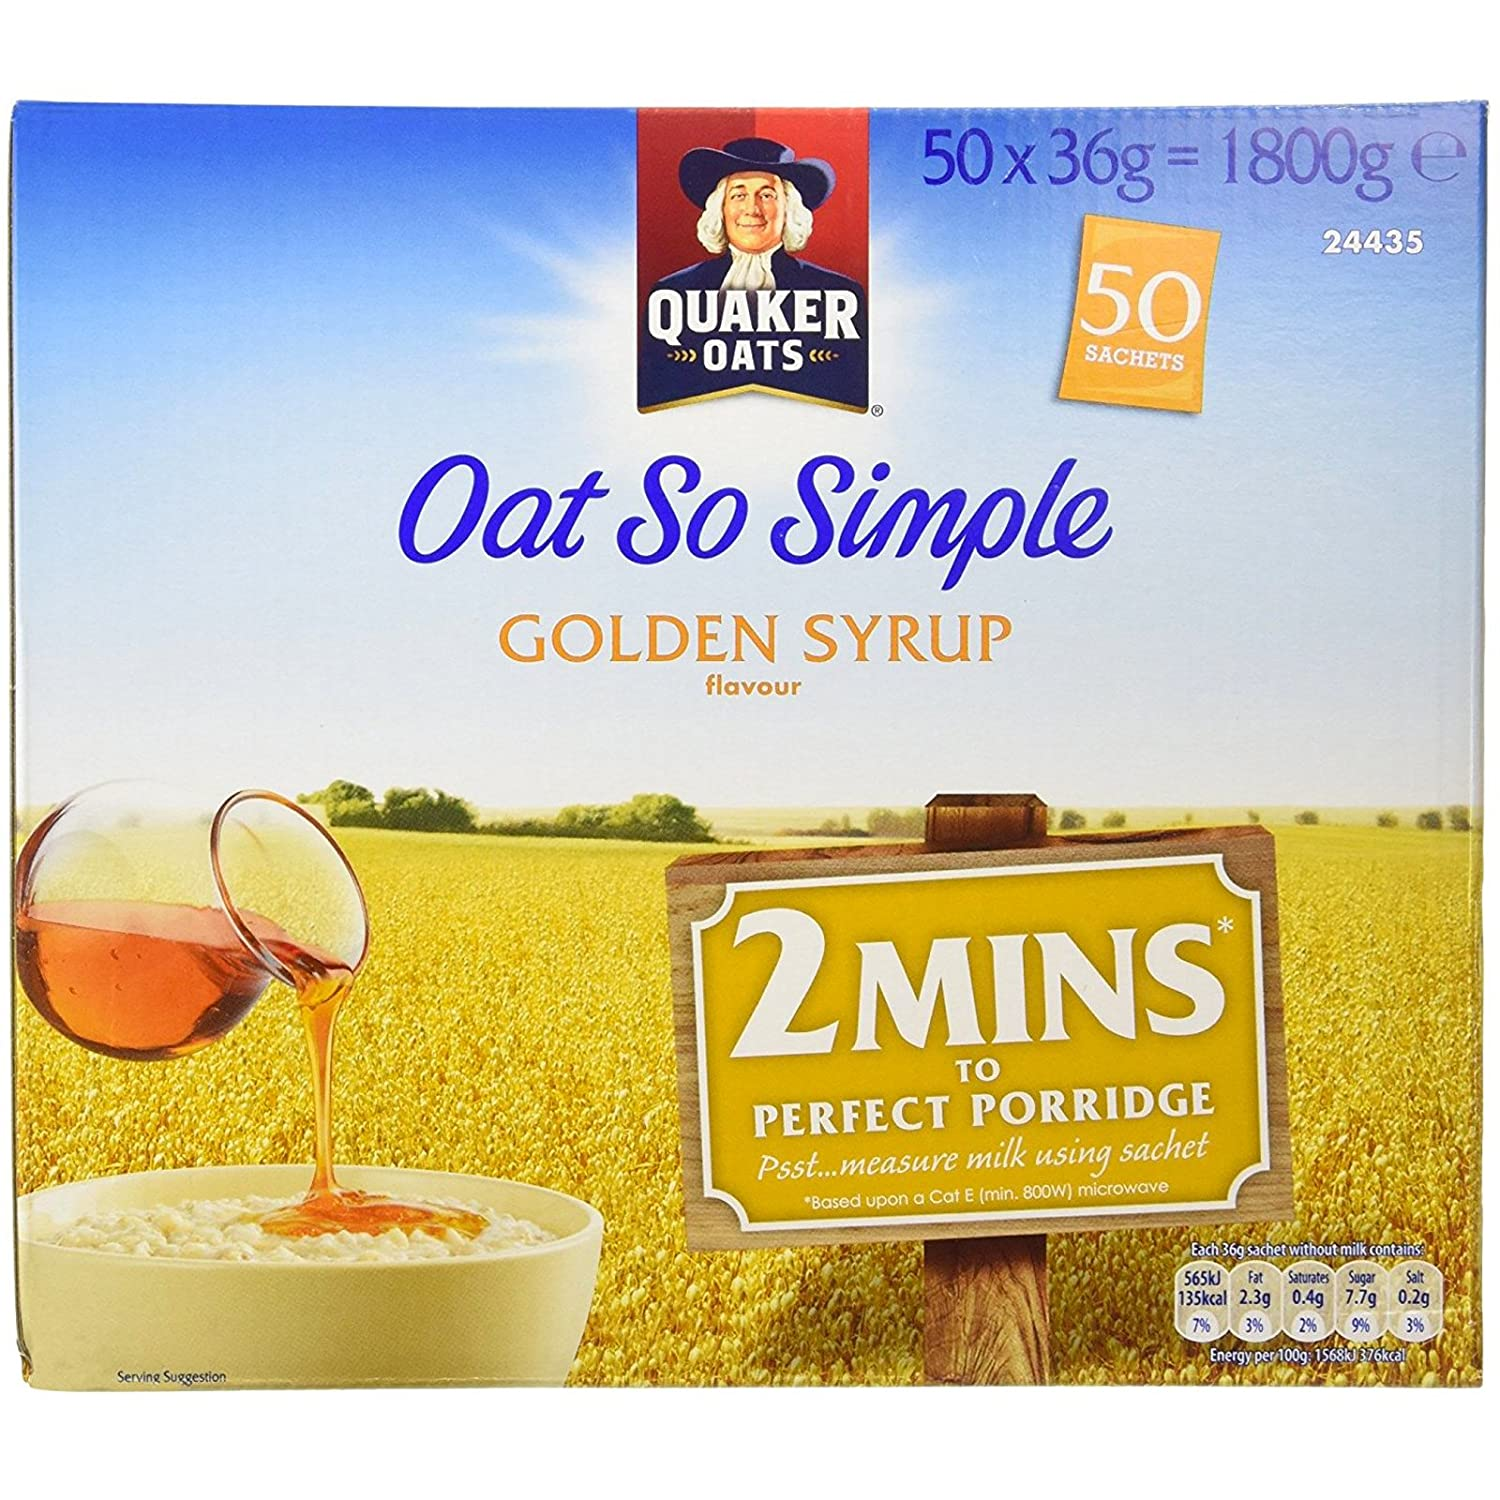 Quaker Oats Oat So Simple Golden Syrup Flavour - 1 x 50 sachets: Amazon.es: Hogar